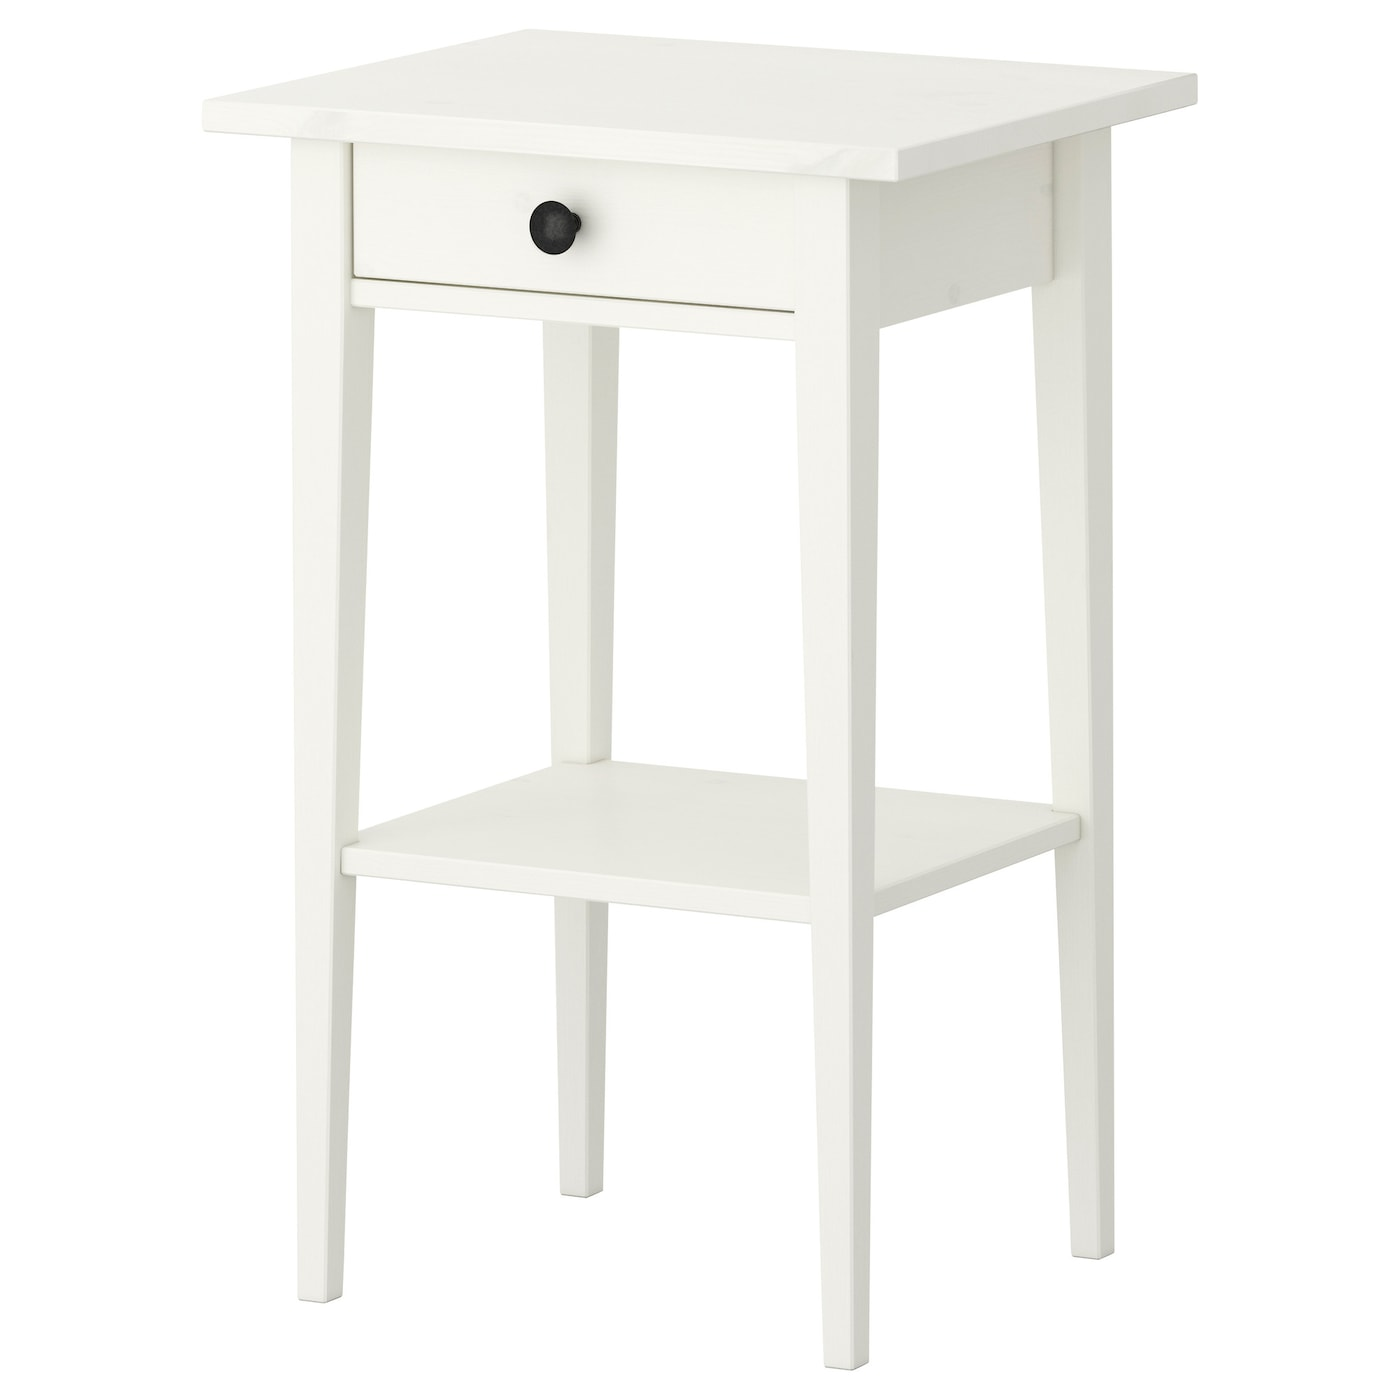 hemnes table de chevet teint blanc 46 x 35 cm ikea. Black Bedroom Furniture Sets. Home Design Ideas